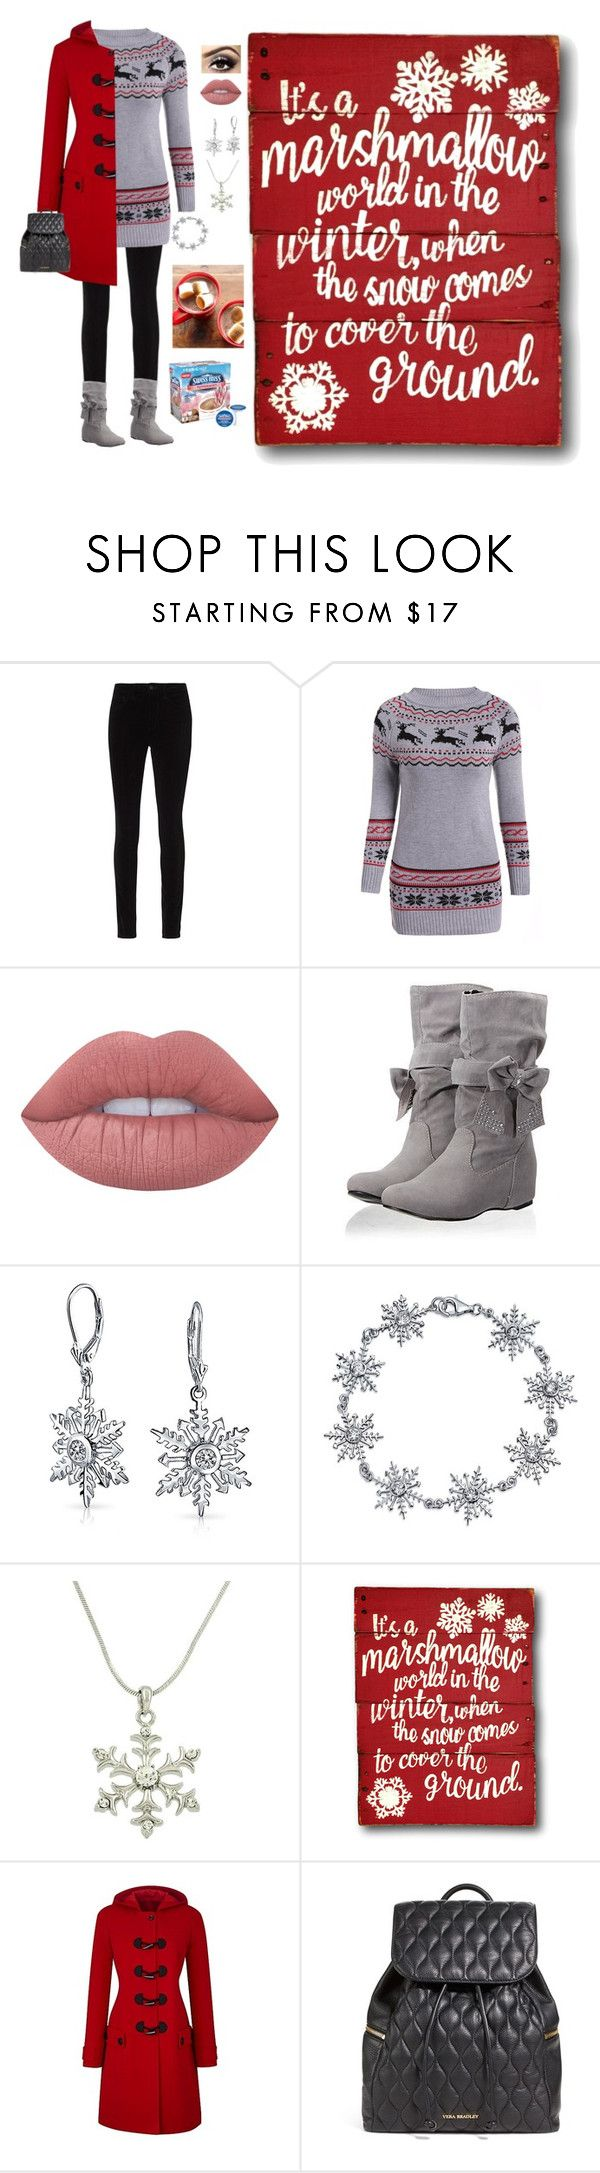 """Winter Time"" by pinky-dee ❤ liked on Polyvore featuring L'Agence, Lime Crime, Bling Jewelry, Vera Bradley and Keurig"